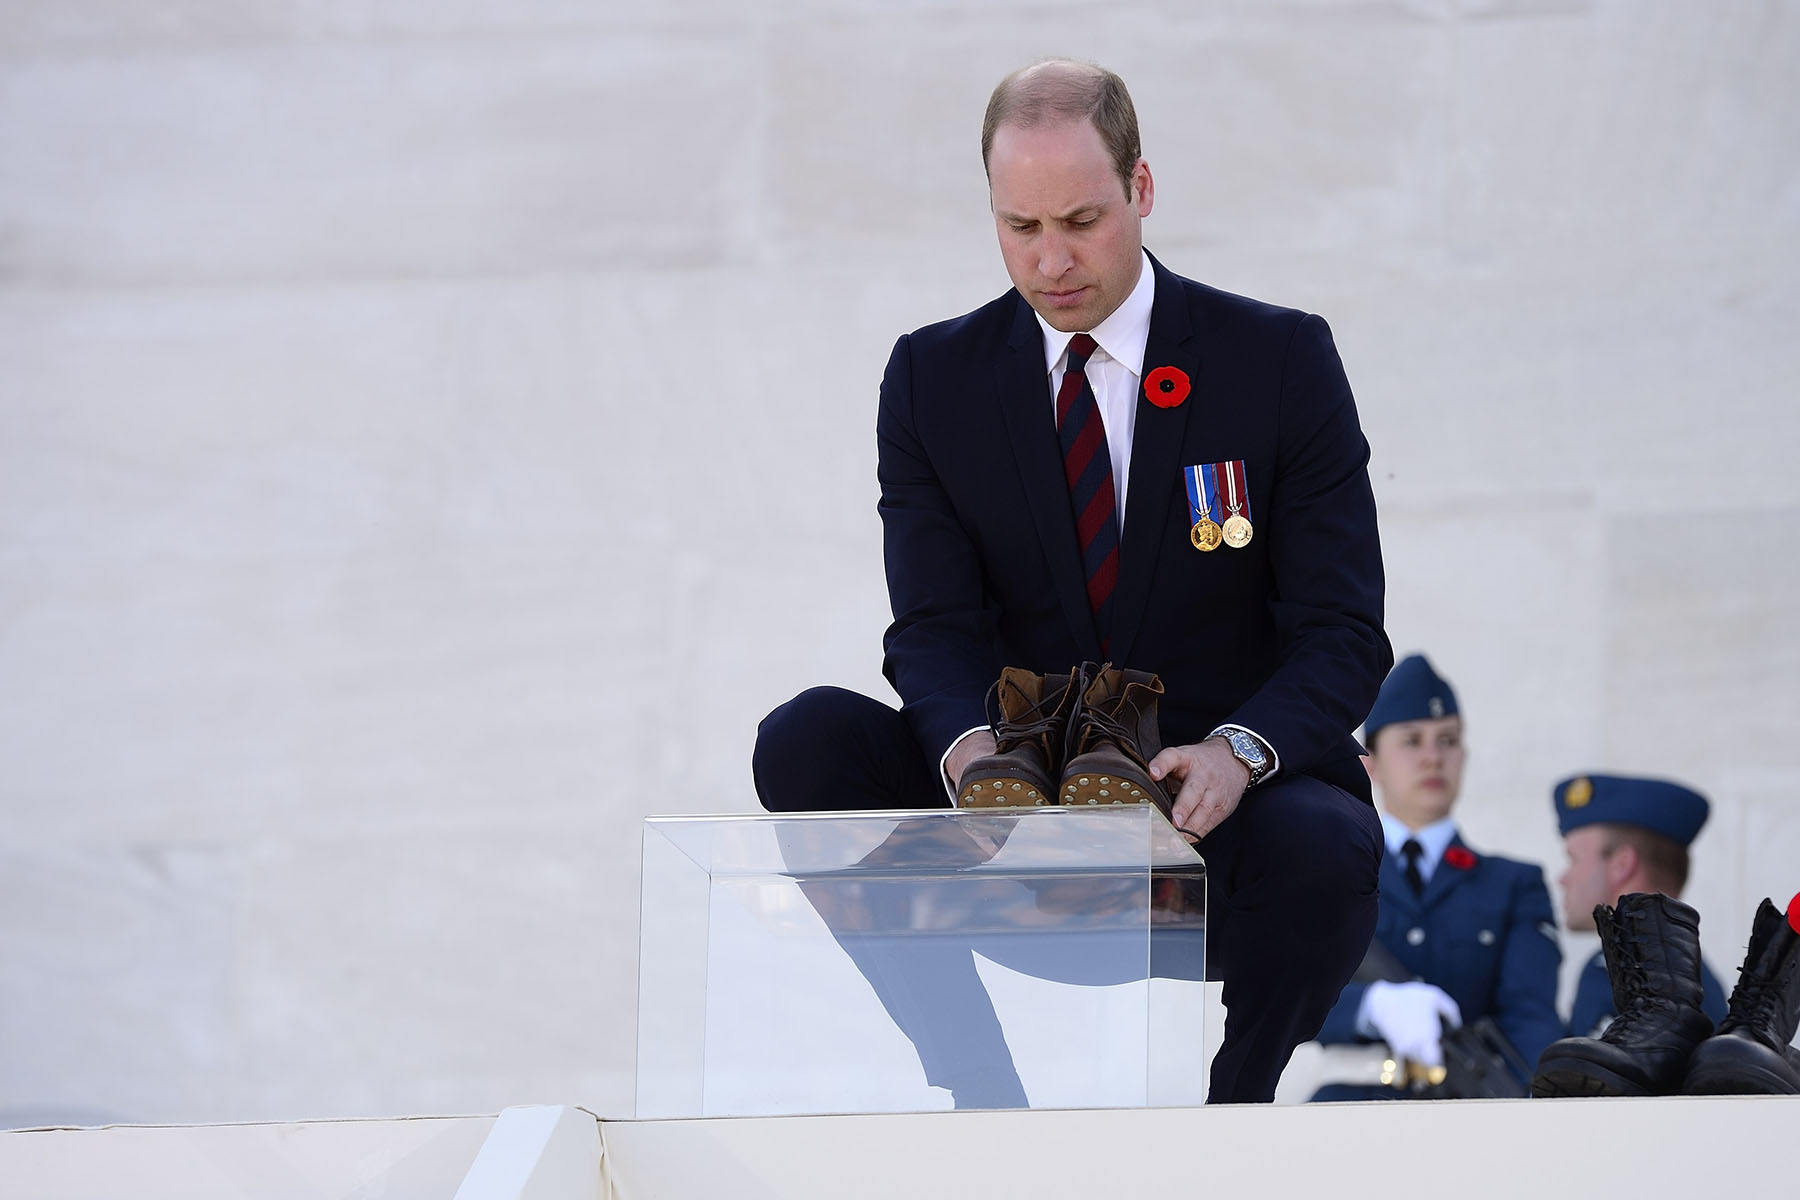 During the ceremony, Their Royal Highnesses The Duke of Cambridge and Prince Harry laid the last pair of boots symbolically representing the 3 598 Canadian soldiers who fell during the battle.